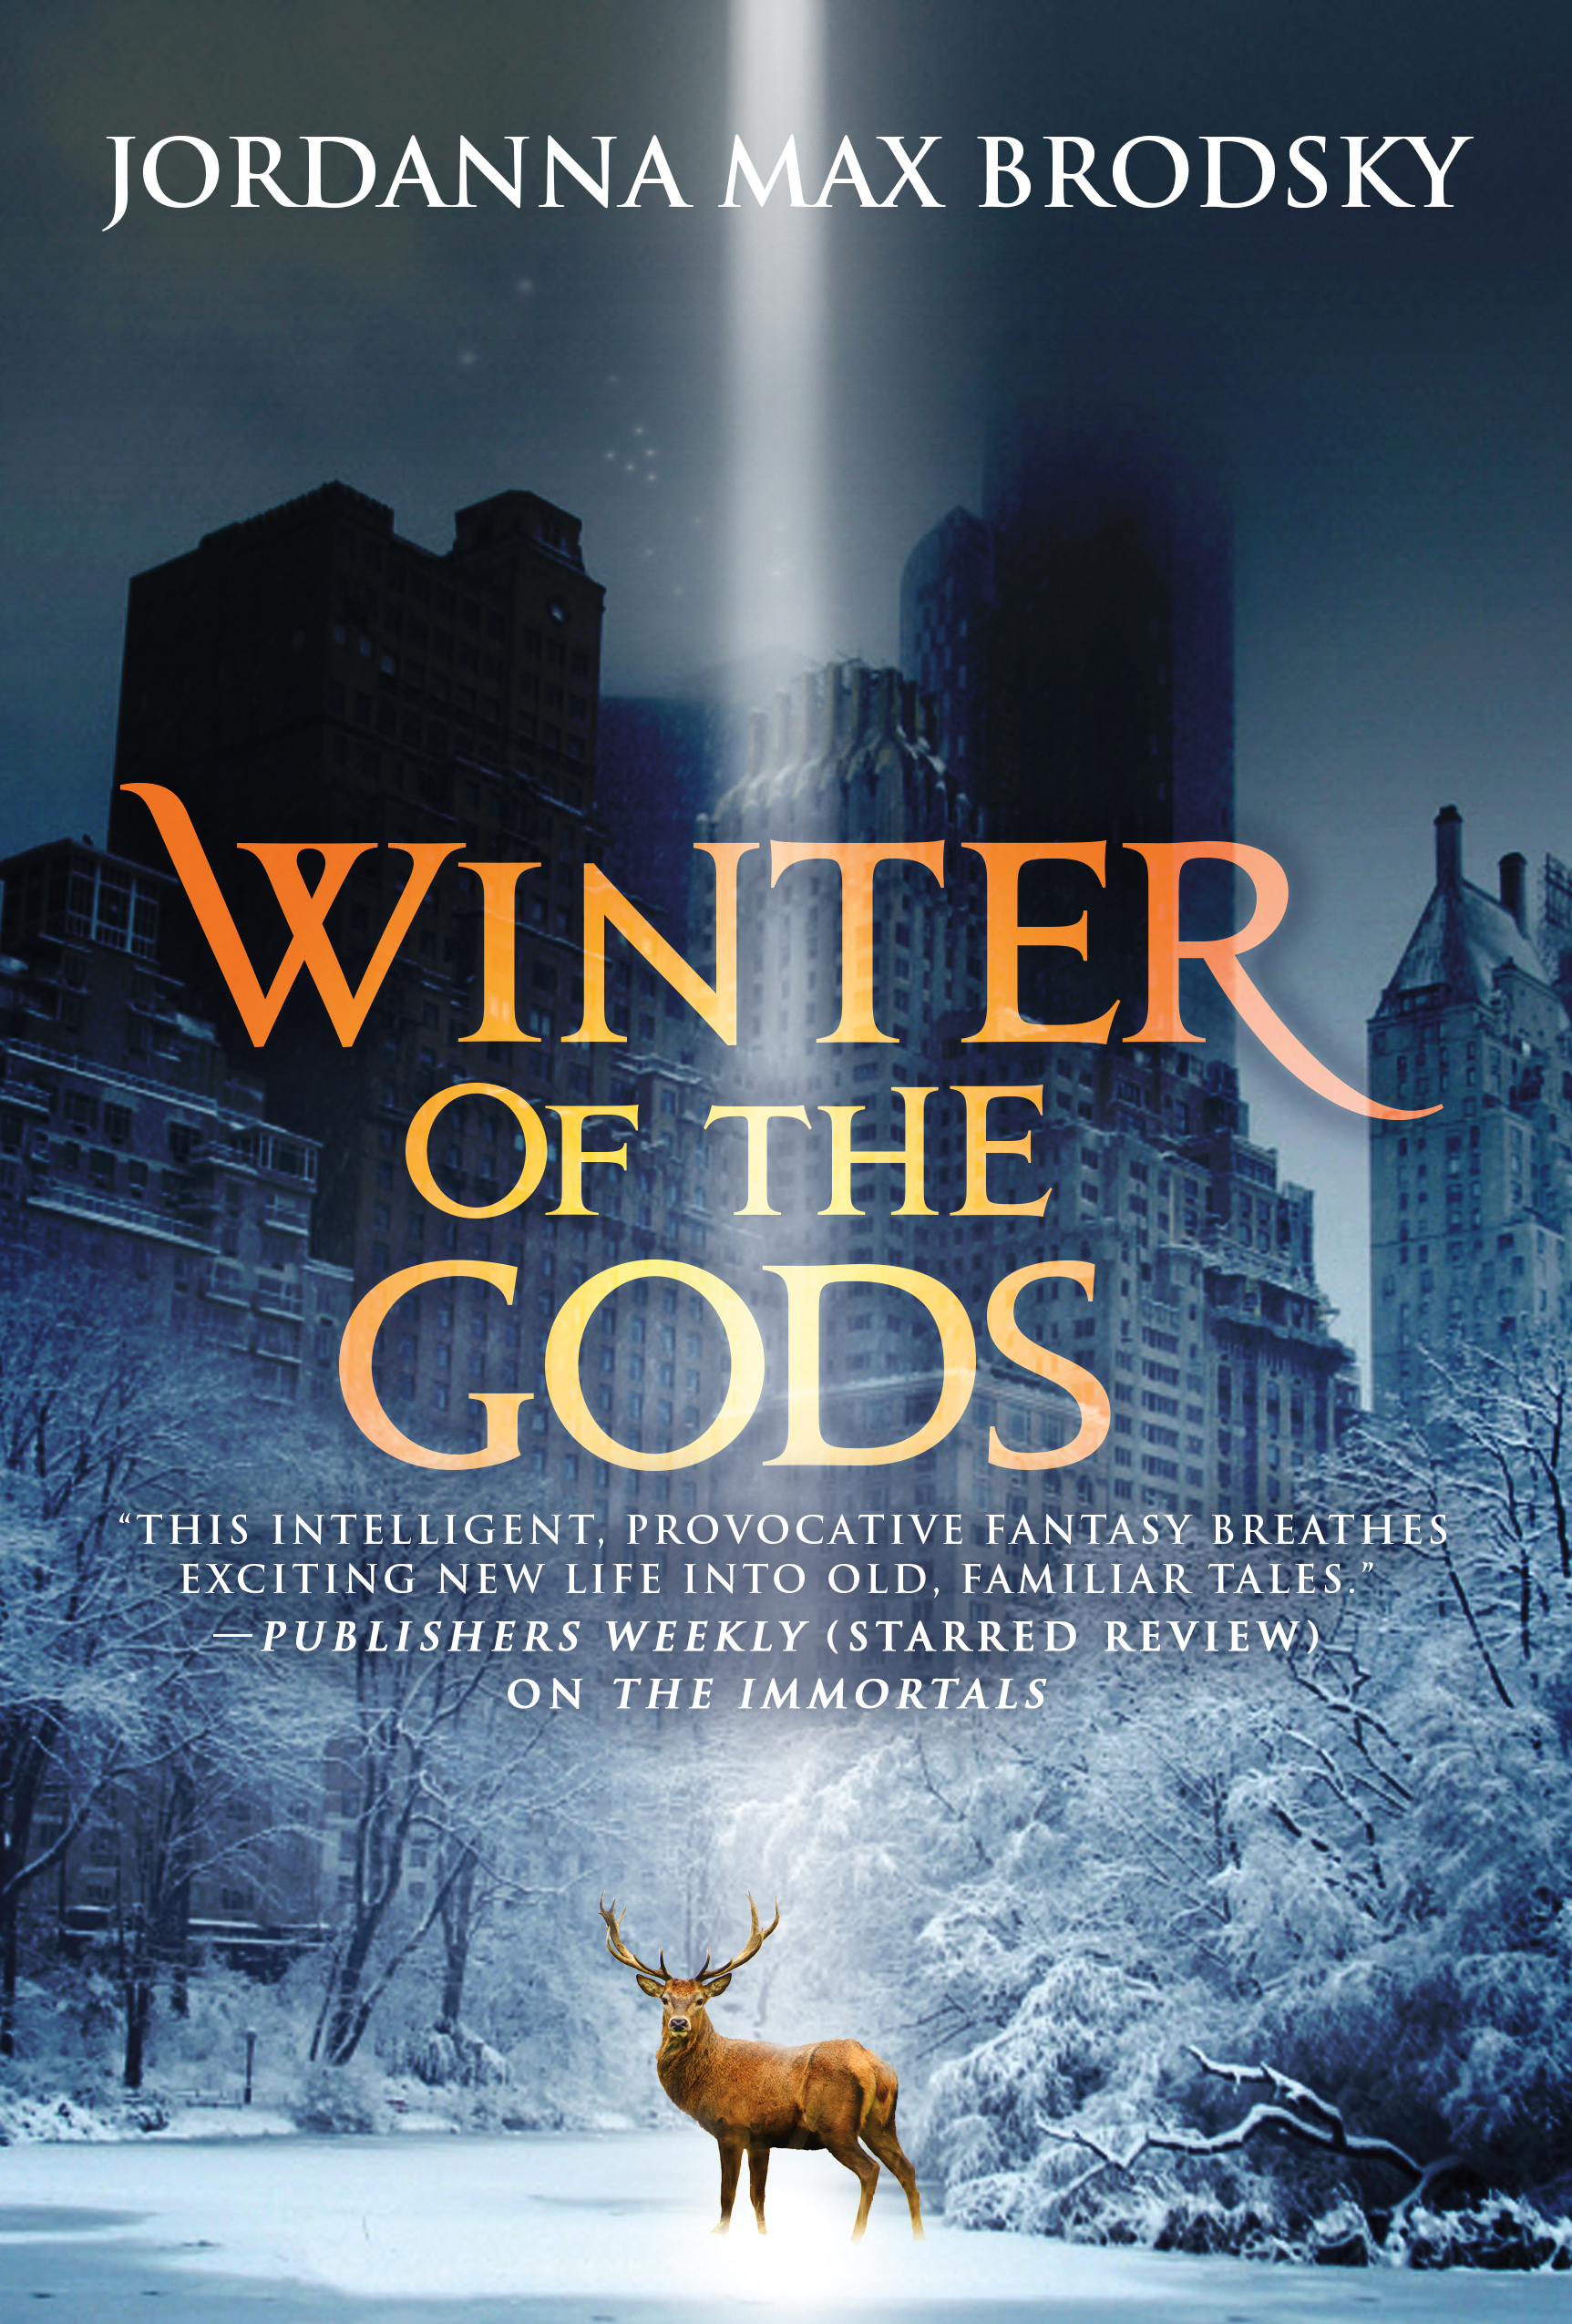 WINTER OF THE GODS Hardcover by Jordanna Max Brodsky